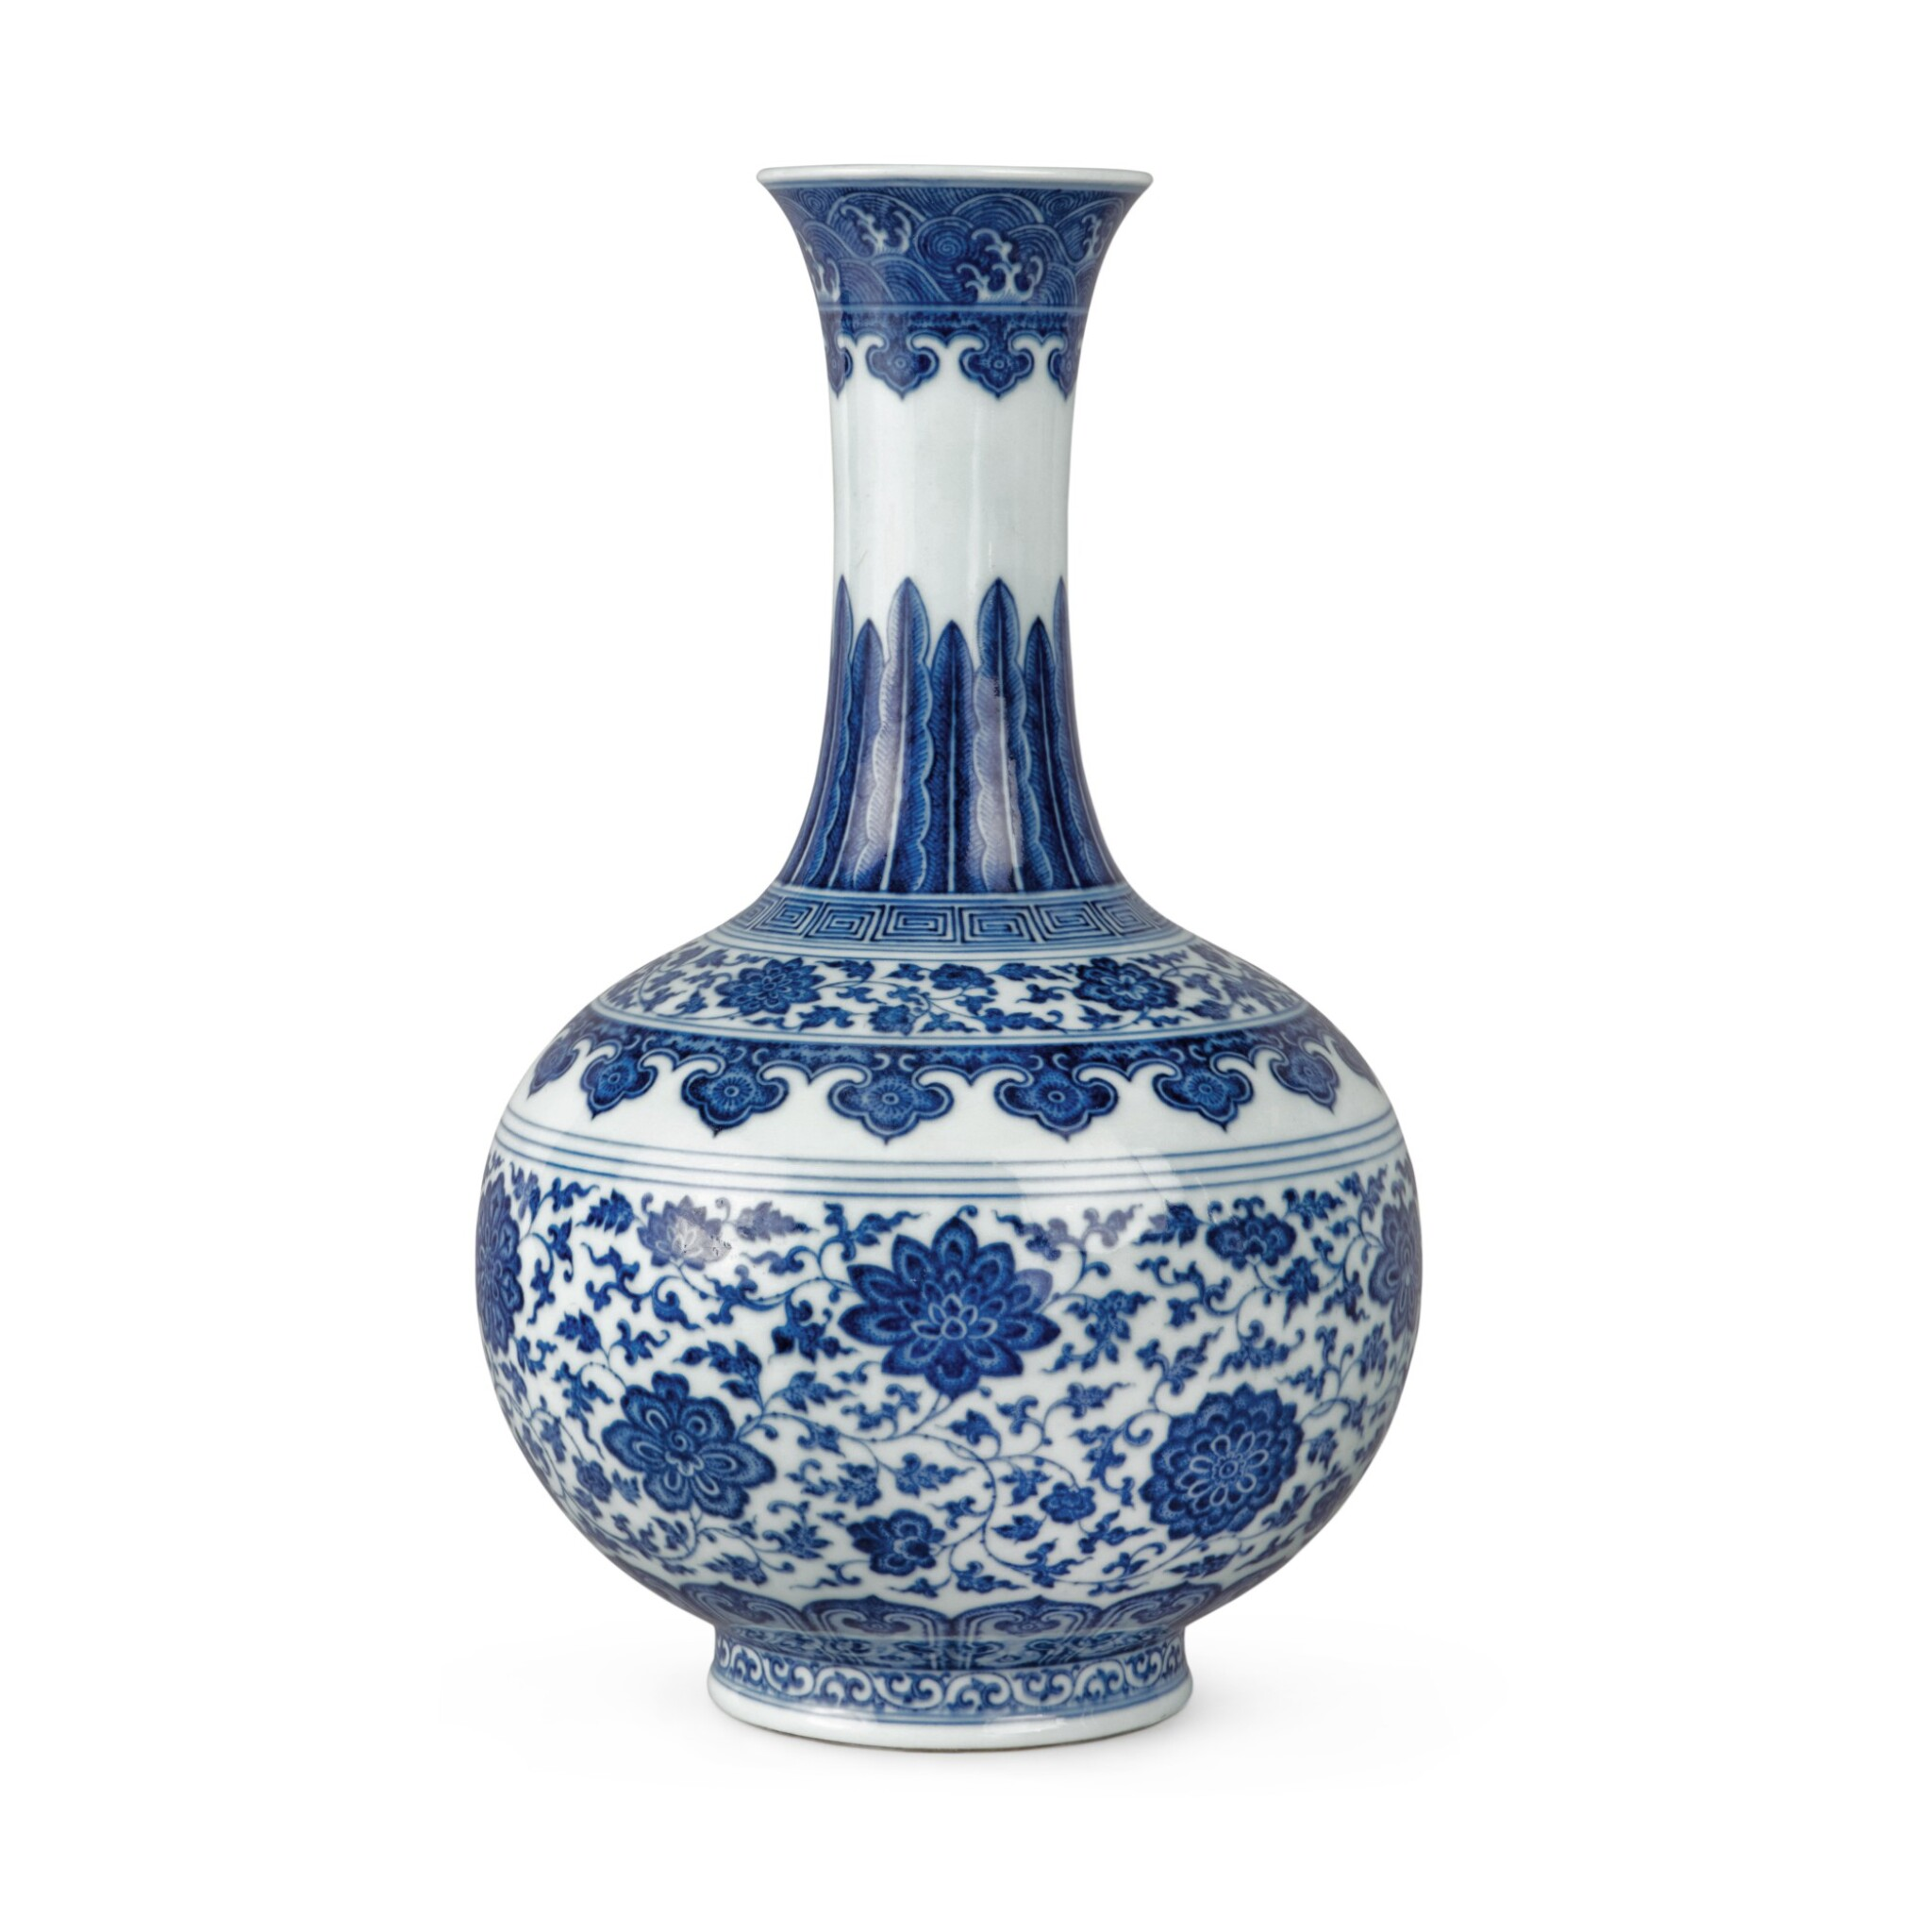 View full screen - View 1 of Lot 75. A blue and white Ming-style bottle vase, Seal mark and period of Qianlong | 清乾隆 青花纏枝花卉紋賞瓶 《大清乾隆年製》款.